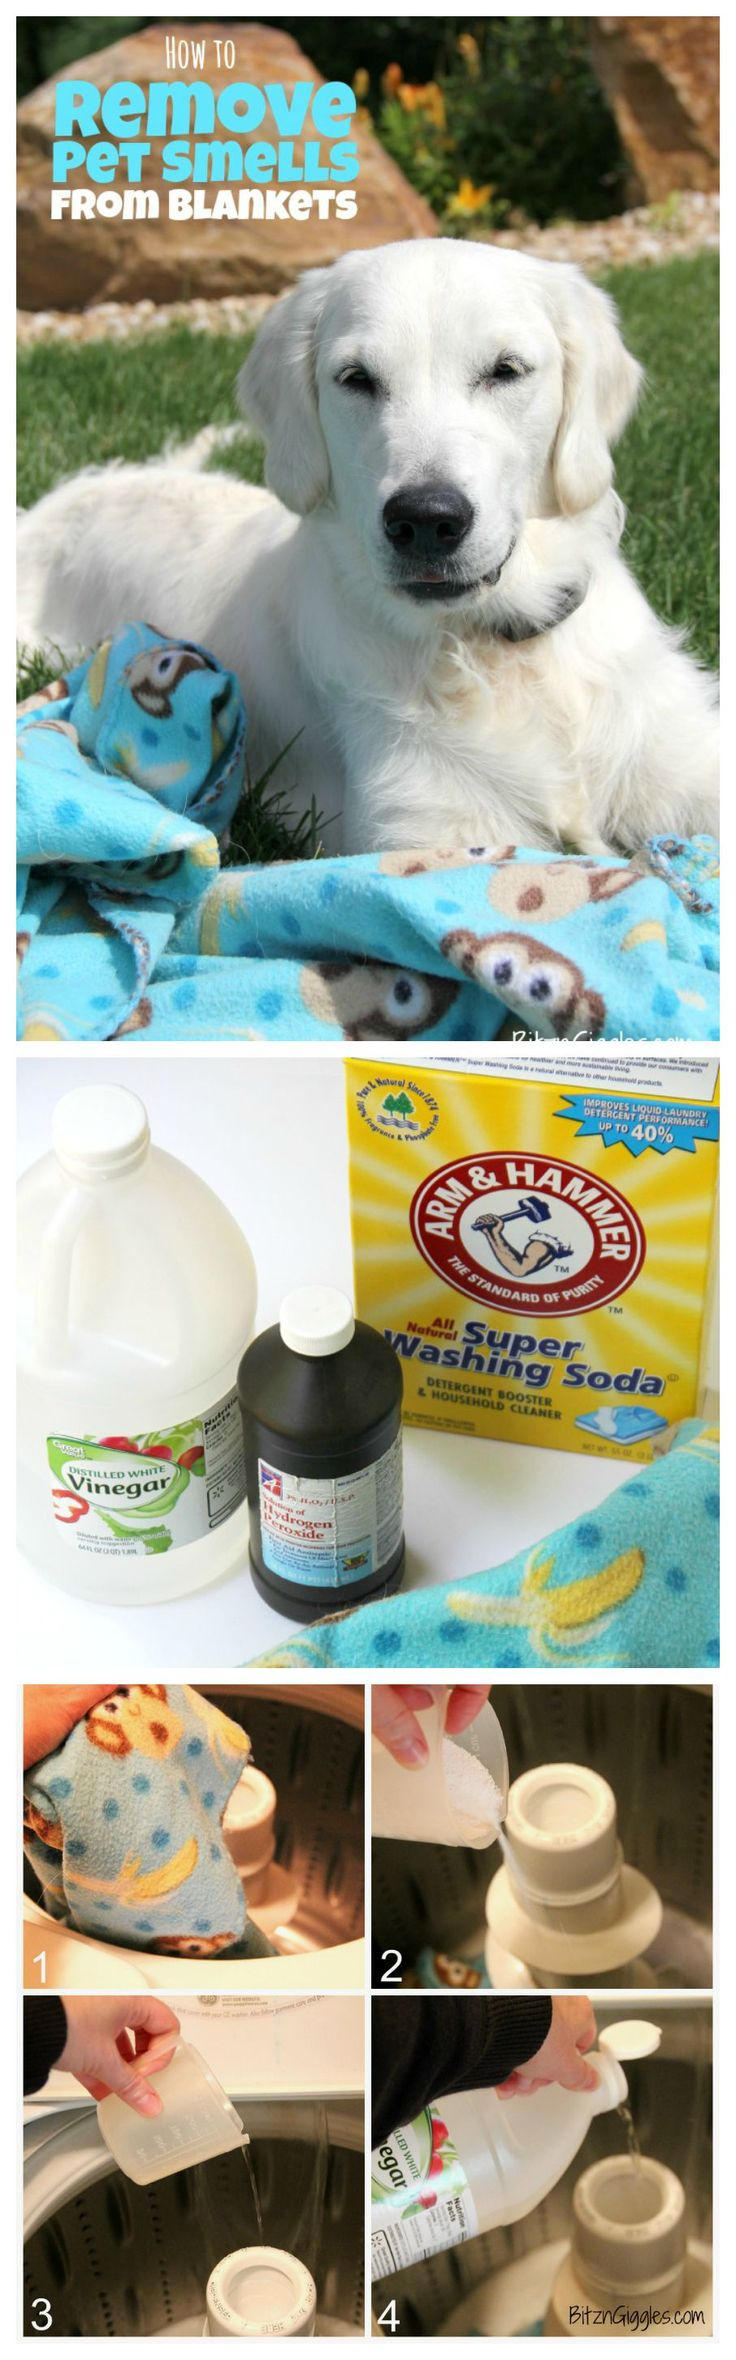 How to Remove Pet Smells From Blankets! If you have a pet, you know exactly what I'm talking about!! This solution will take smells out that regular laundry detergent will not!